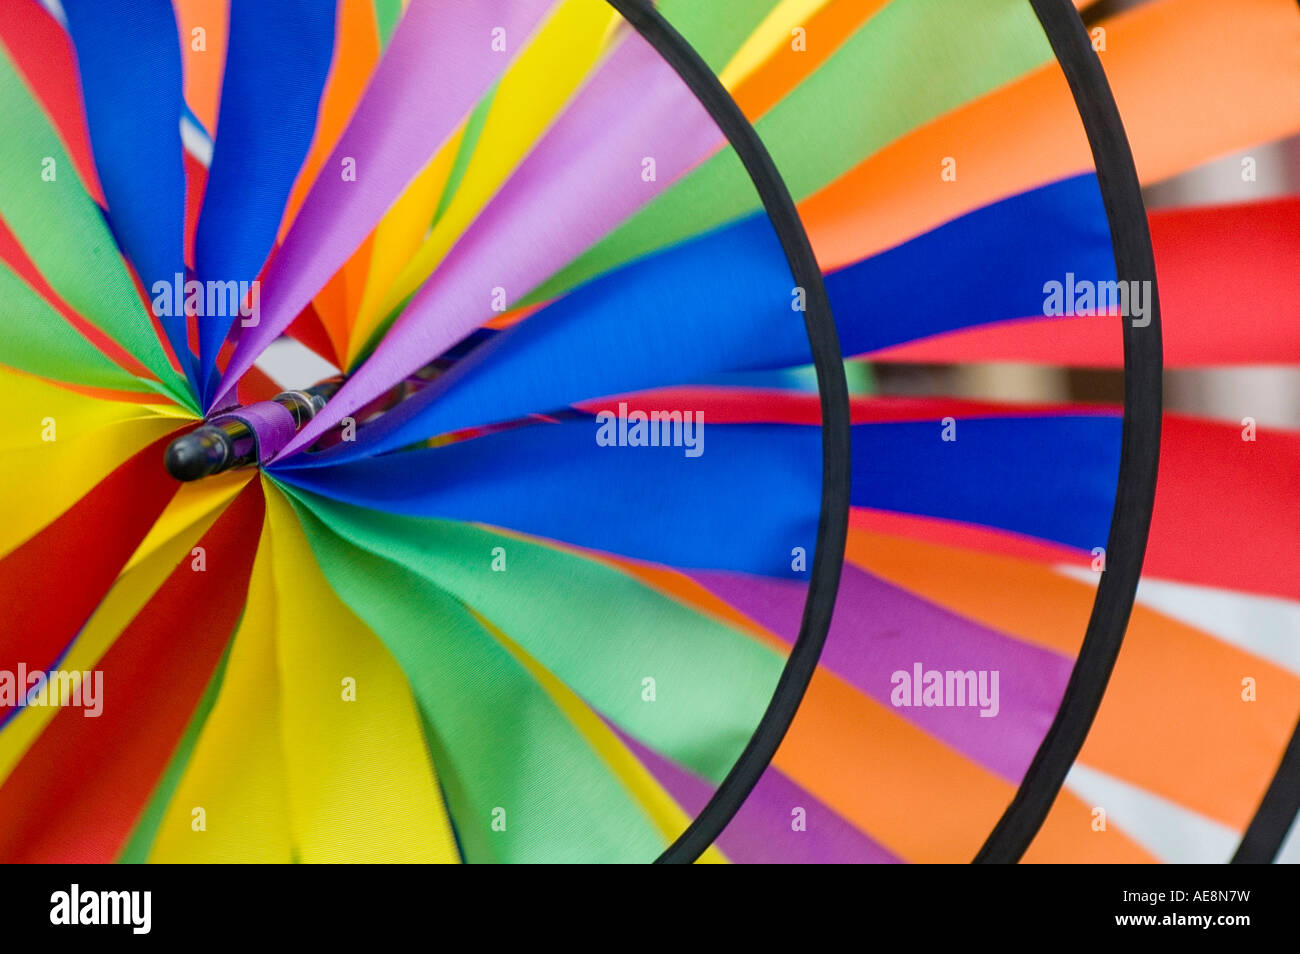 Windmill II. A spiral weather vane or wind vane made of colorful strips of cloth and sprockets - Stock Image